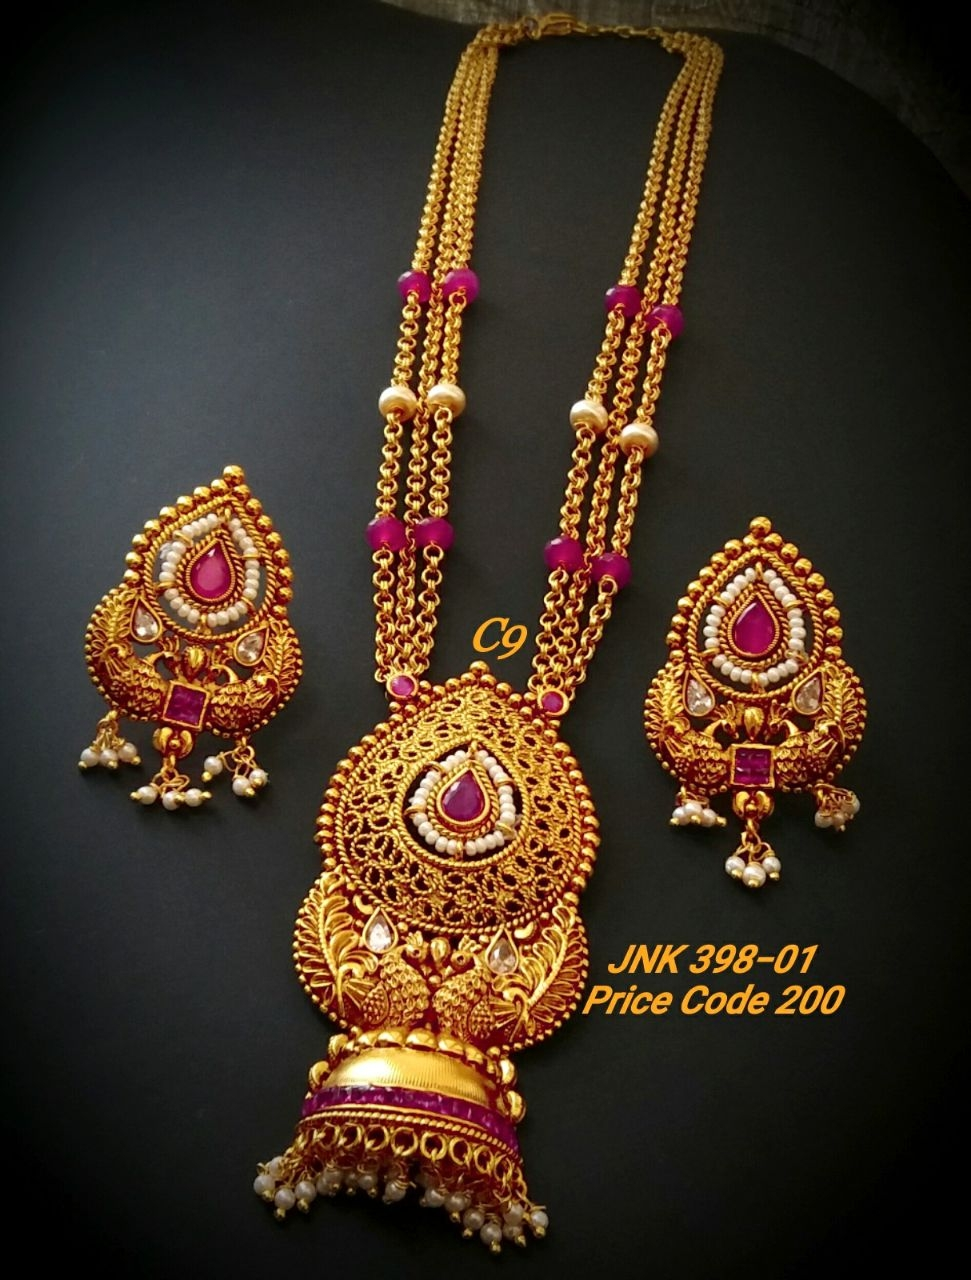 Temple Jewelry Online - Famous Jewelry Designers